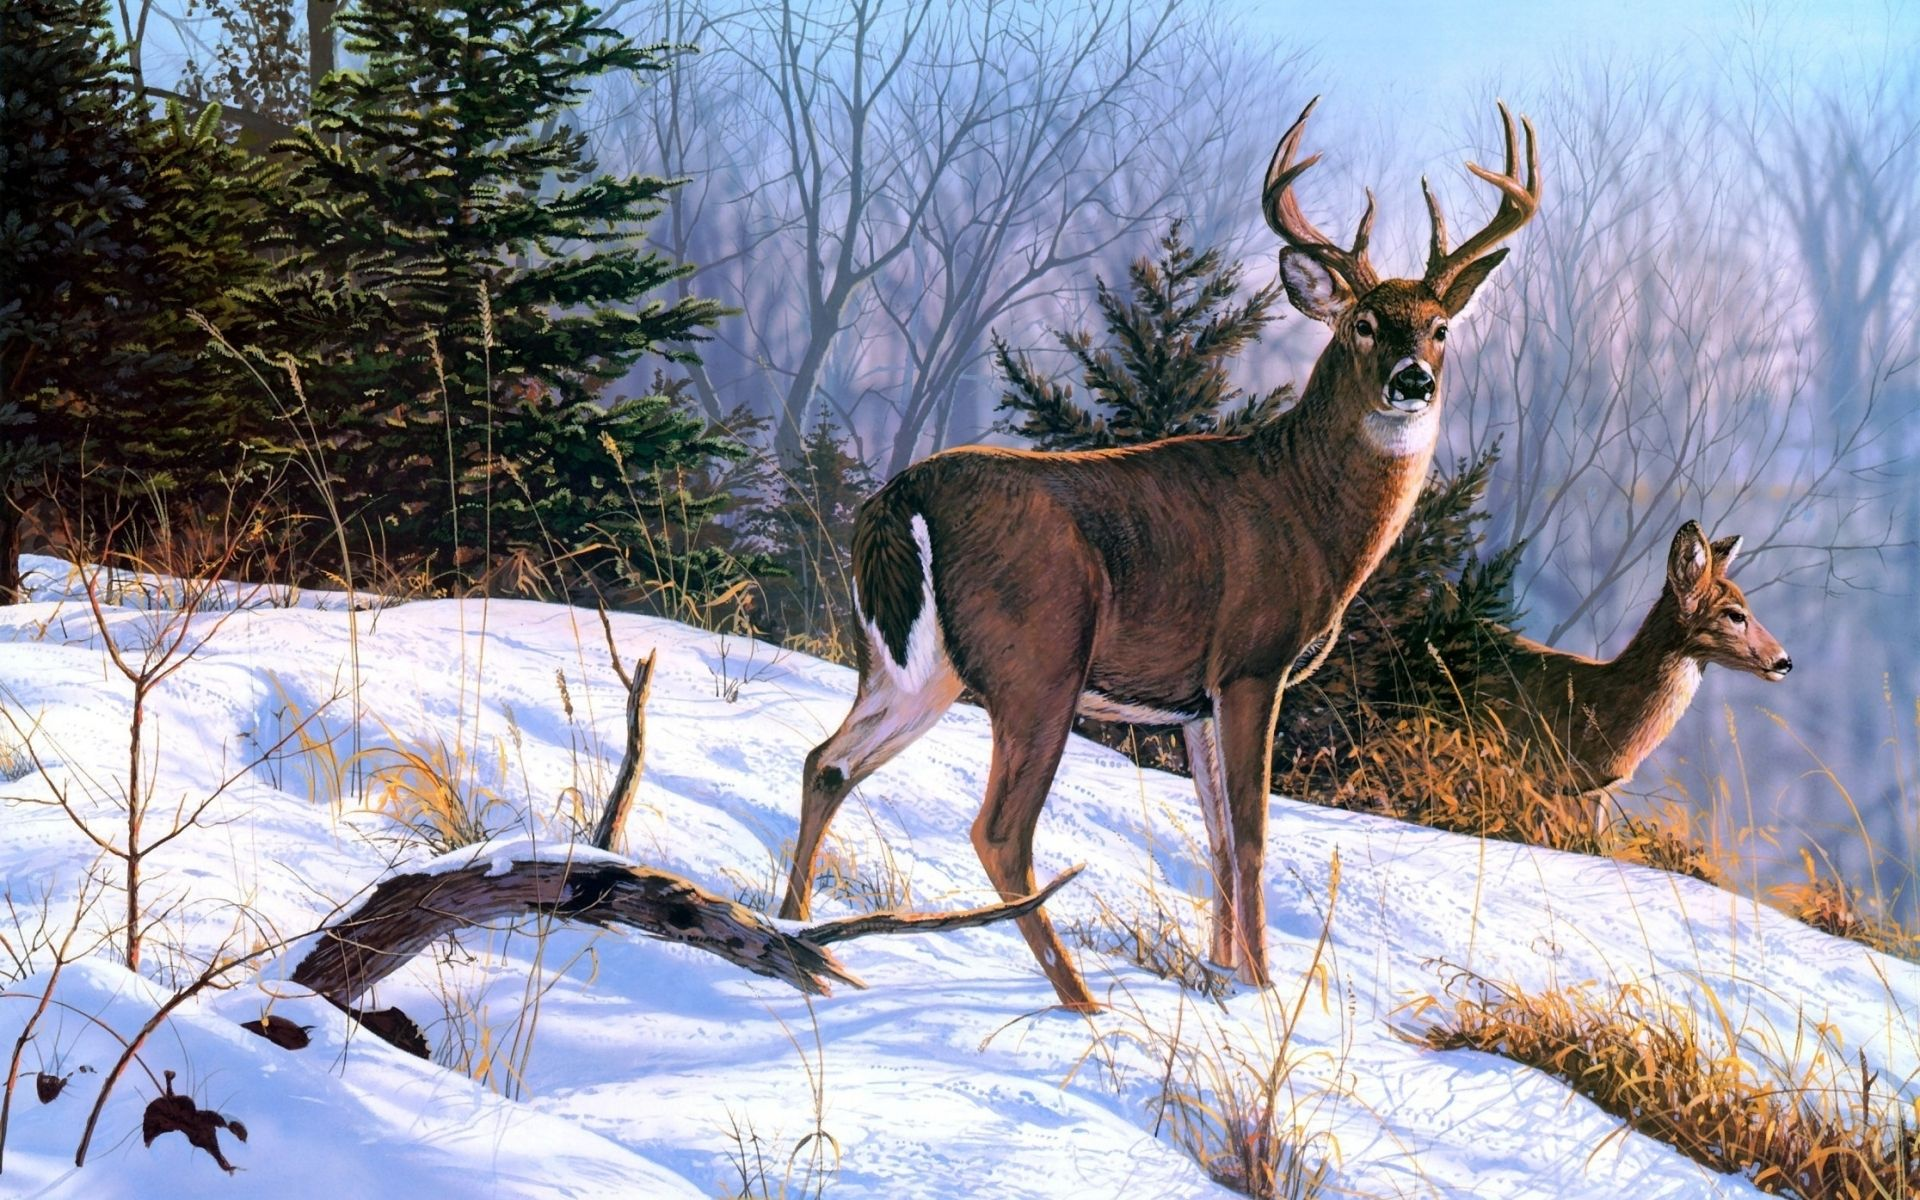 Deer art nature paintings winter wallpaper 1920x1200